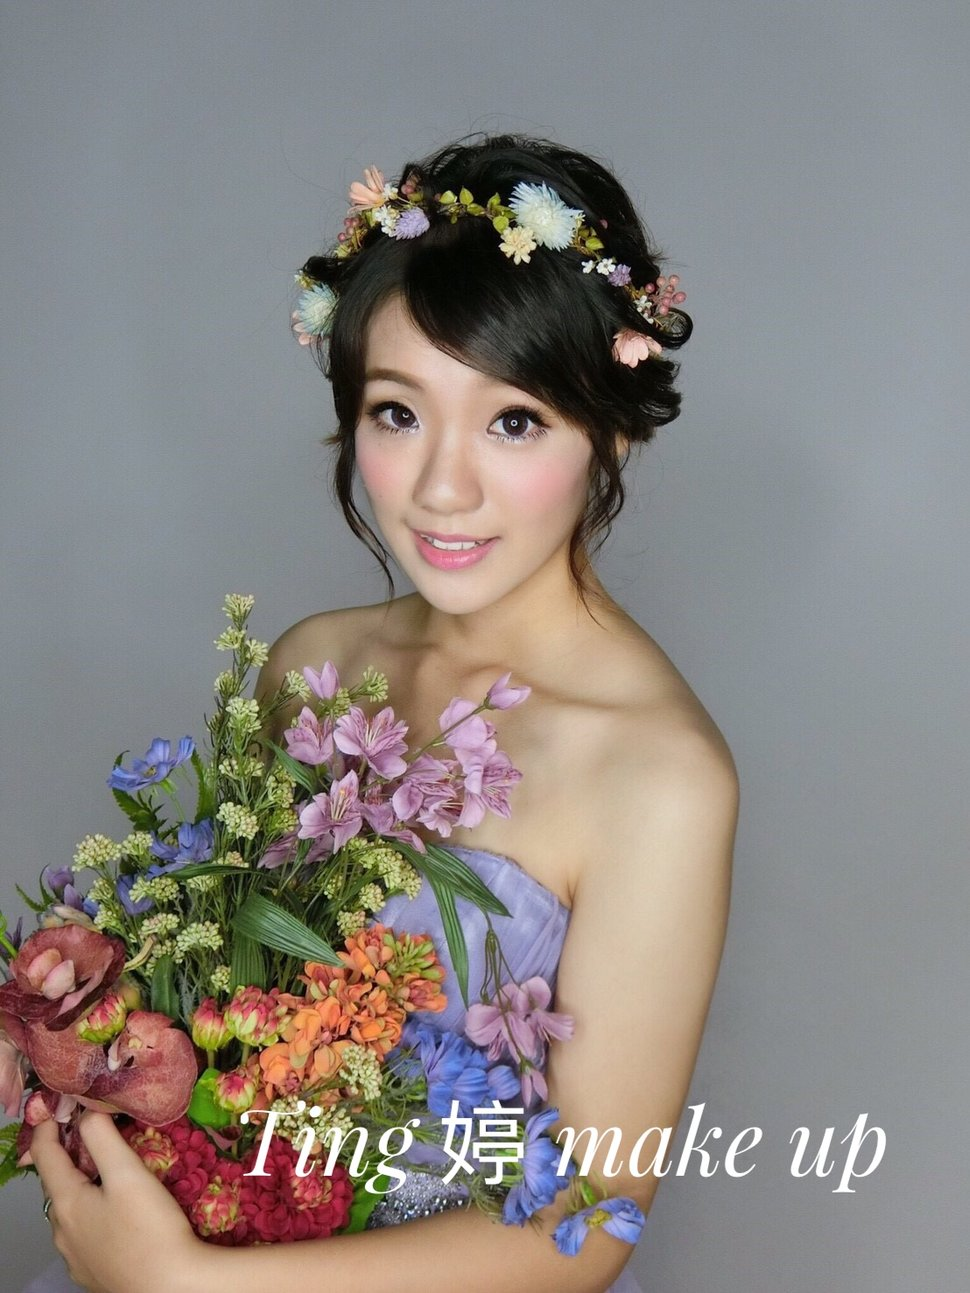 image - Ting婷 make up studio《結婚吧》